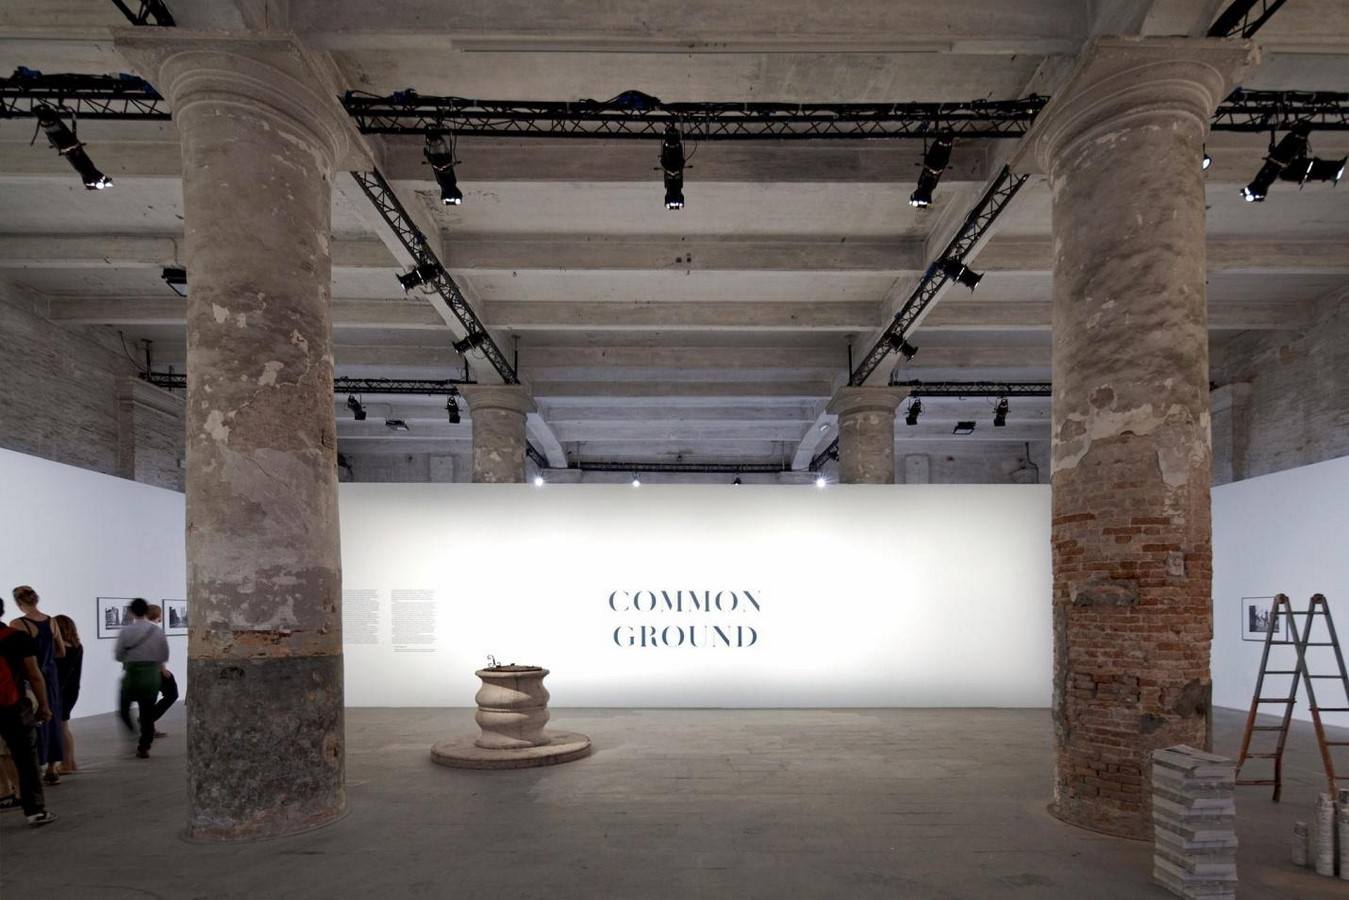 10 architectural exhibitions to look for in 2021 - Sheet1